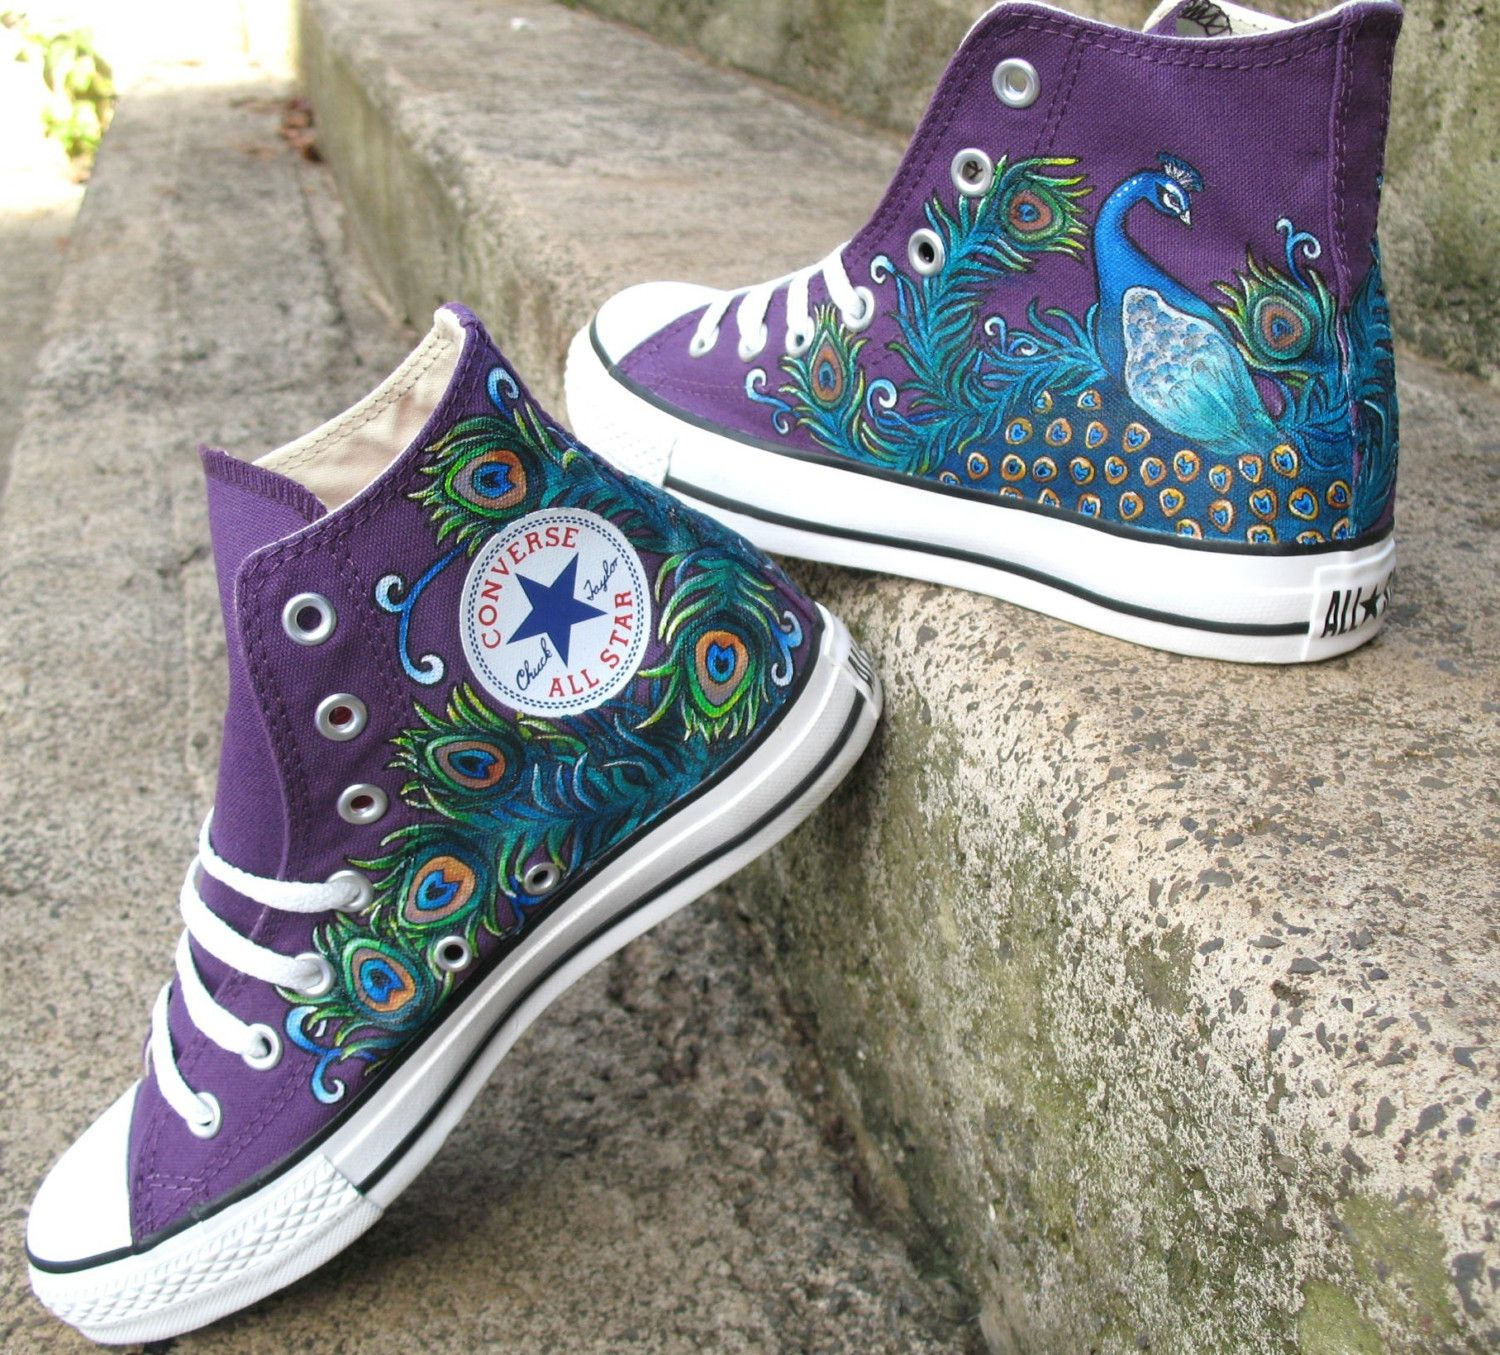 a23afc37f6a ... had this idea all on my own like 3 days ago. only difference is i said  light blue shoes for something blue.-------- Peacock painted on purple  Converse.